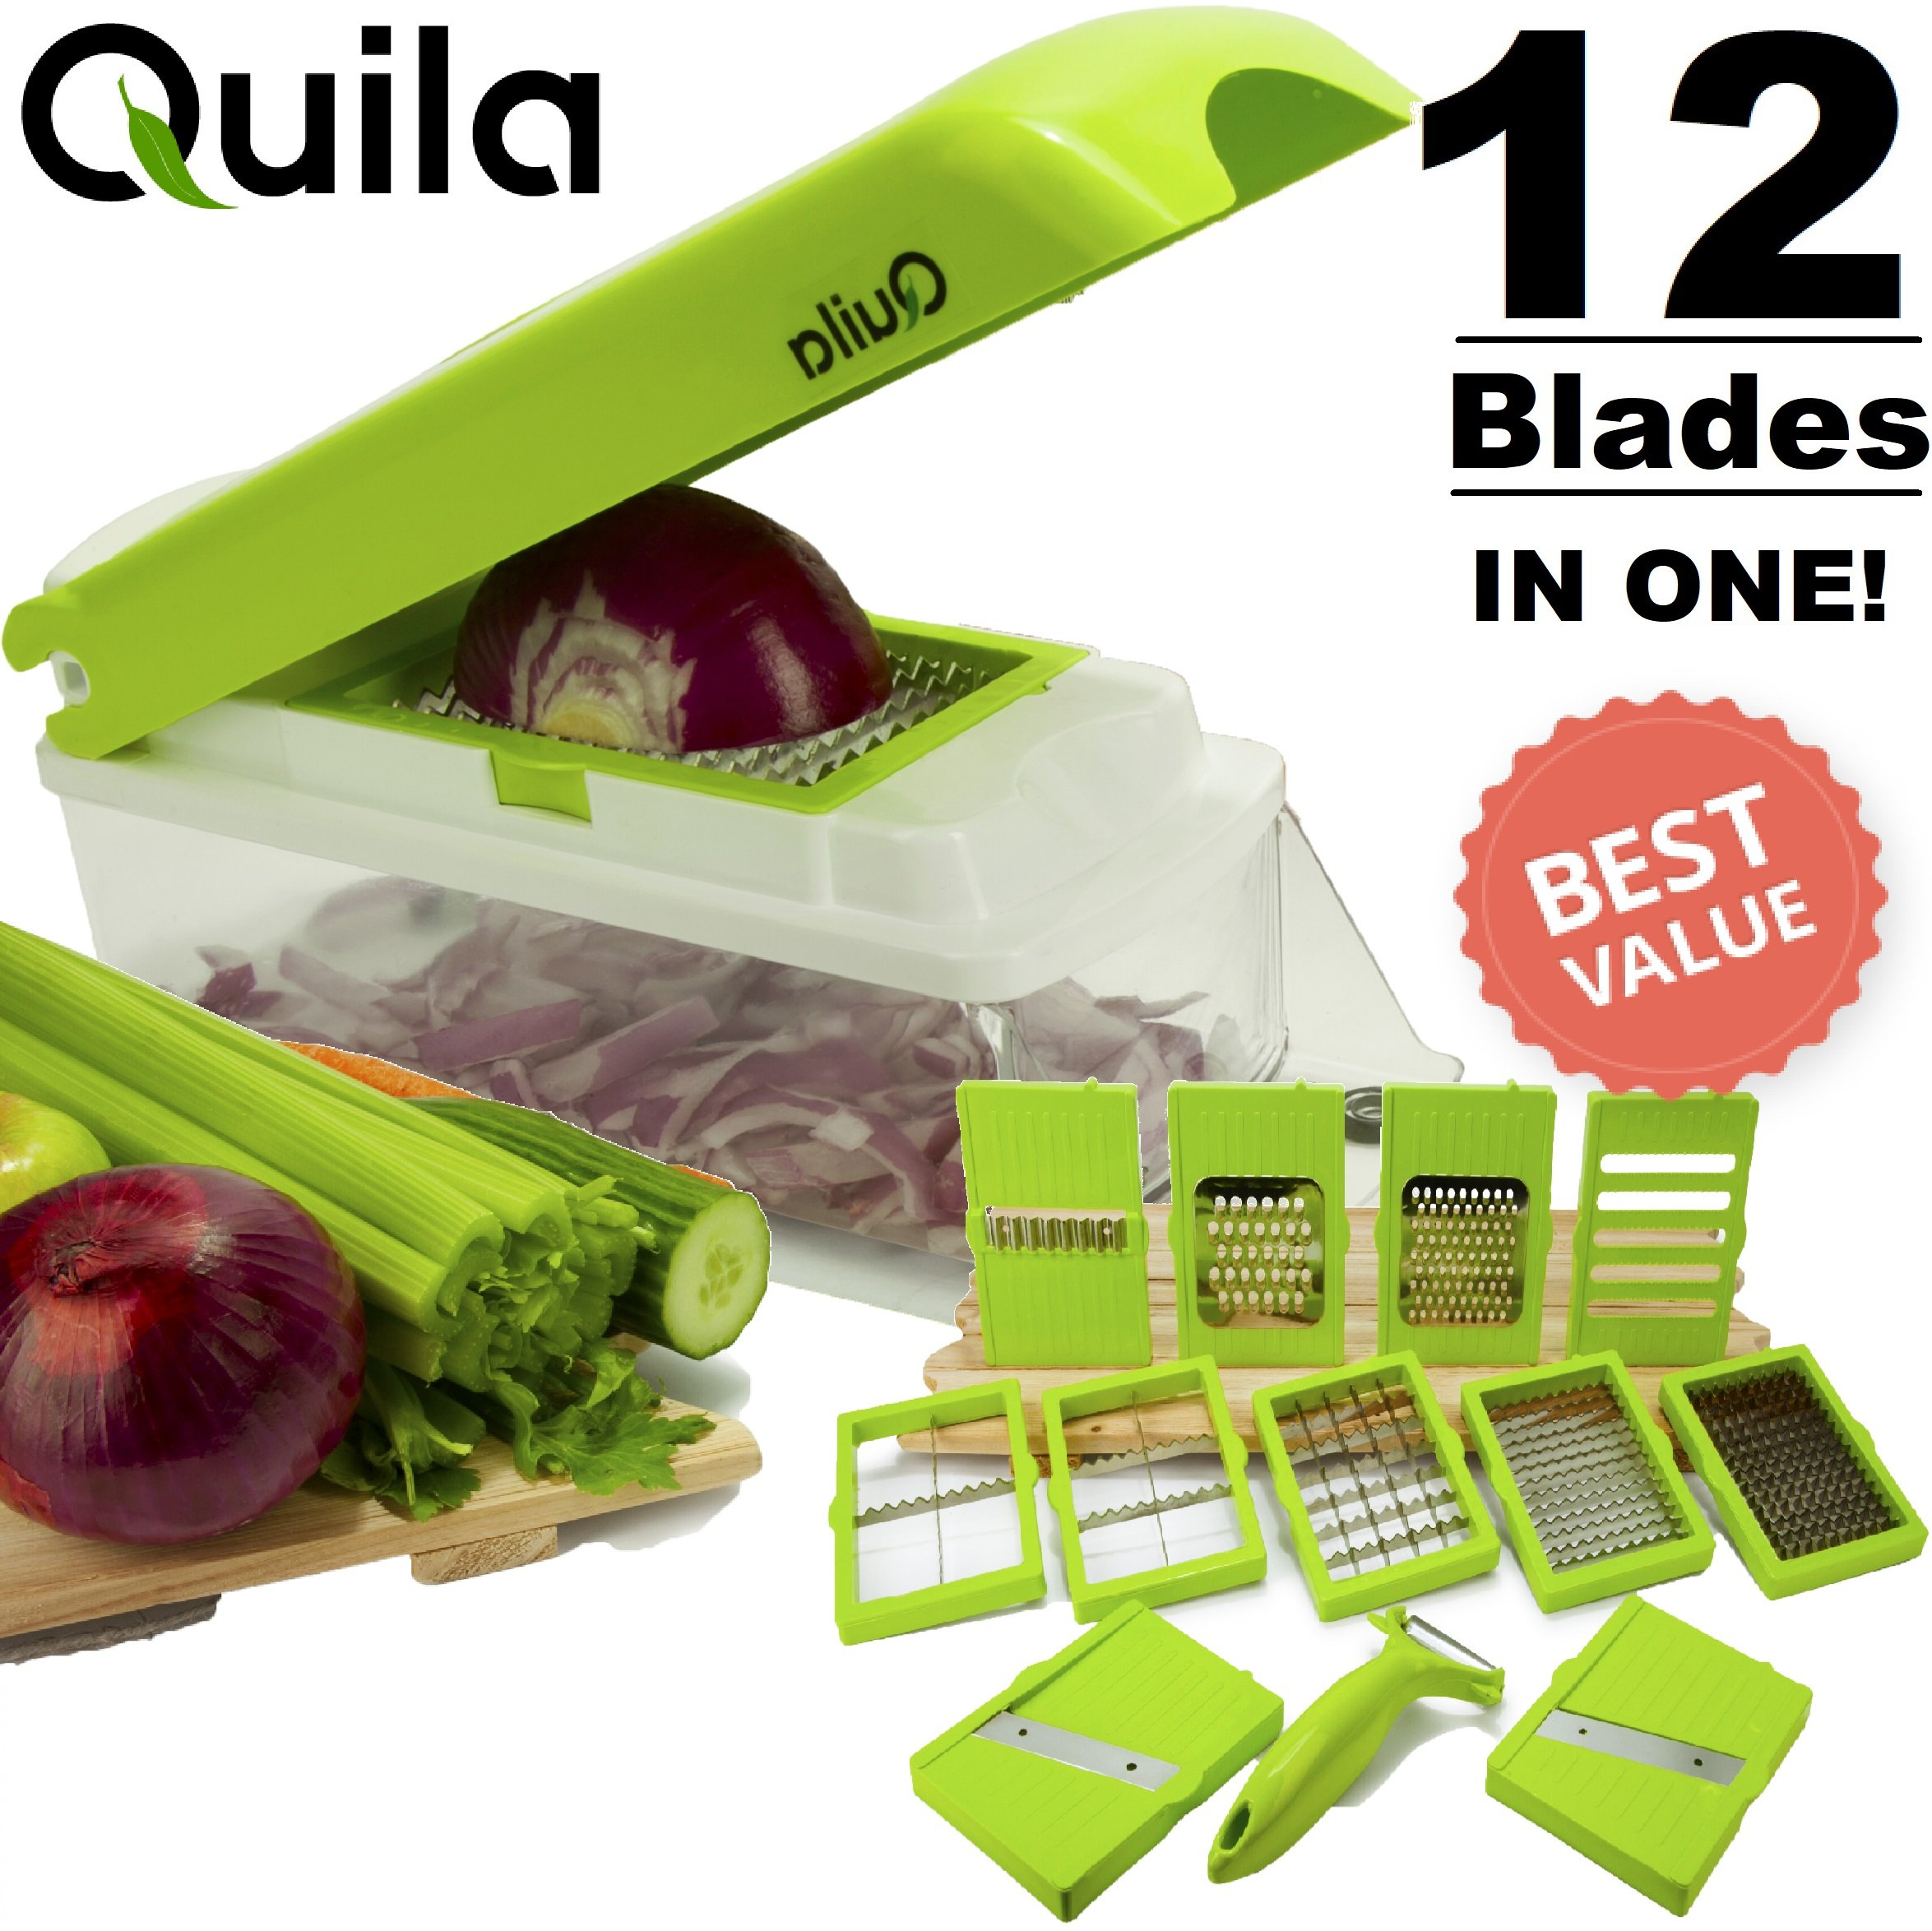 Quila. 12-In-1 Vegetable Chopper & Slicer + FREE EBOOK ! - Cuber & Dicer Food Cutter Cheese Grater Fruit Peeler Mandolin Slice Premium Stainless Steel Blade. Prime. FDA Approved.